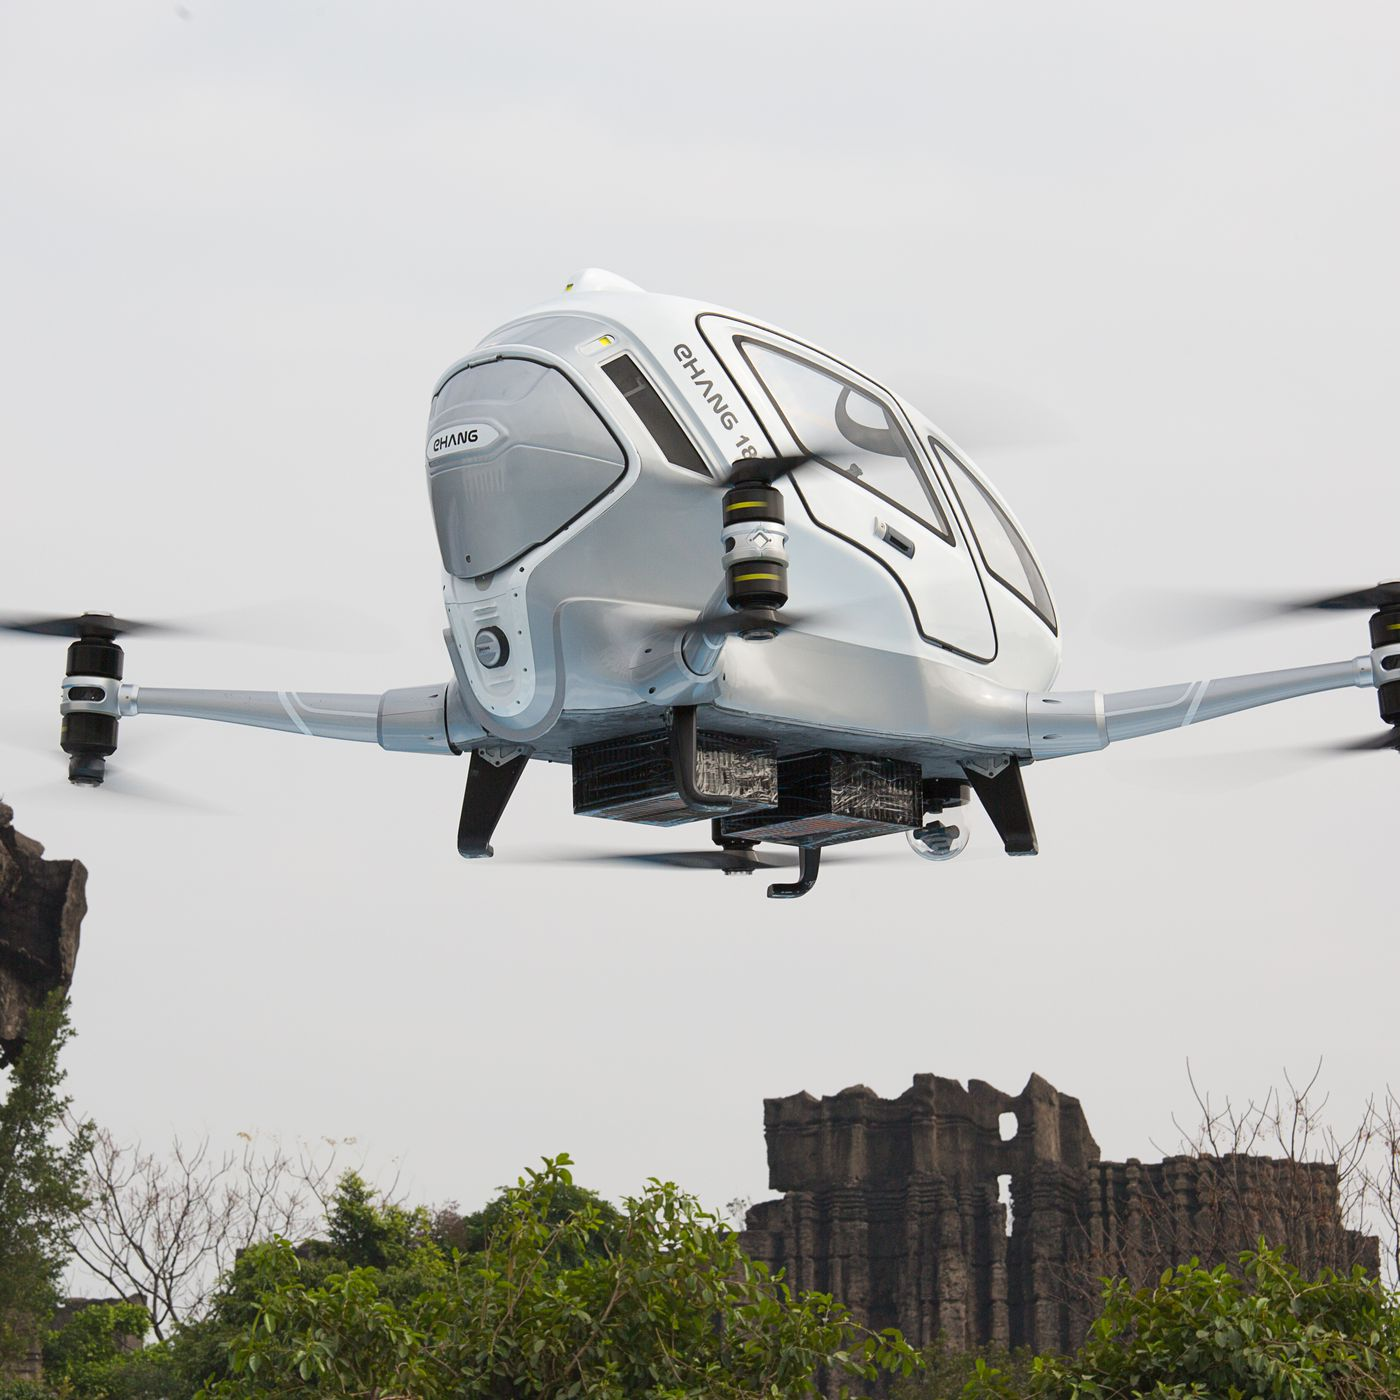 Ehang S Penger Carrying Drones Look Insanely Impressive In First Test Flights The Verge